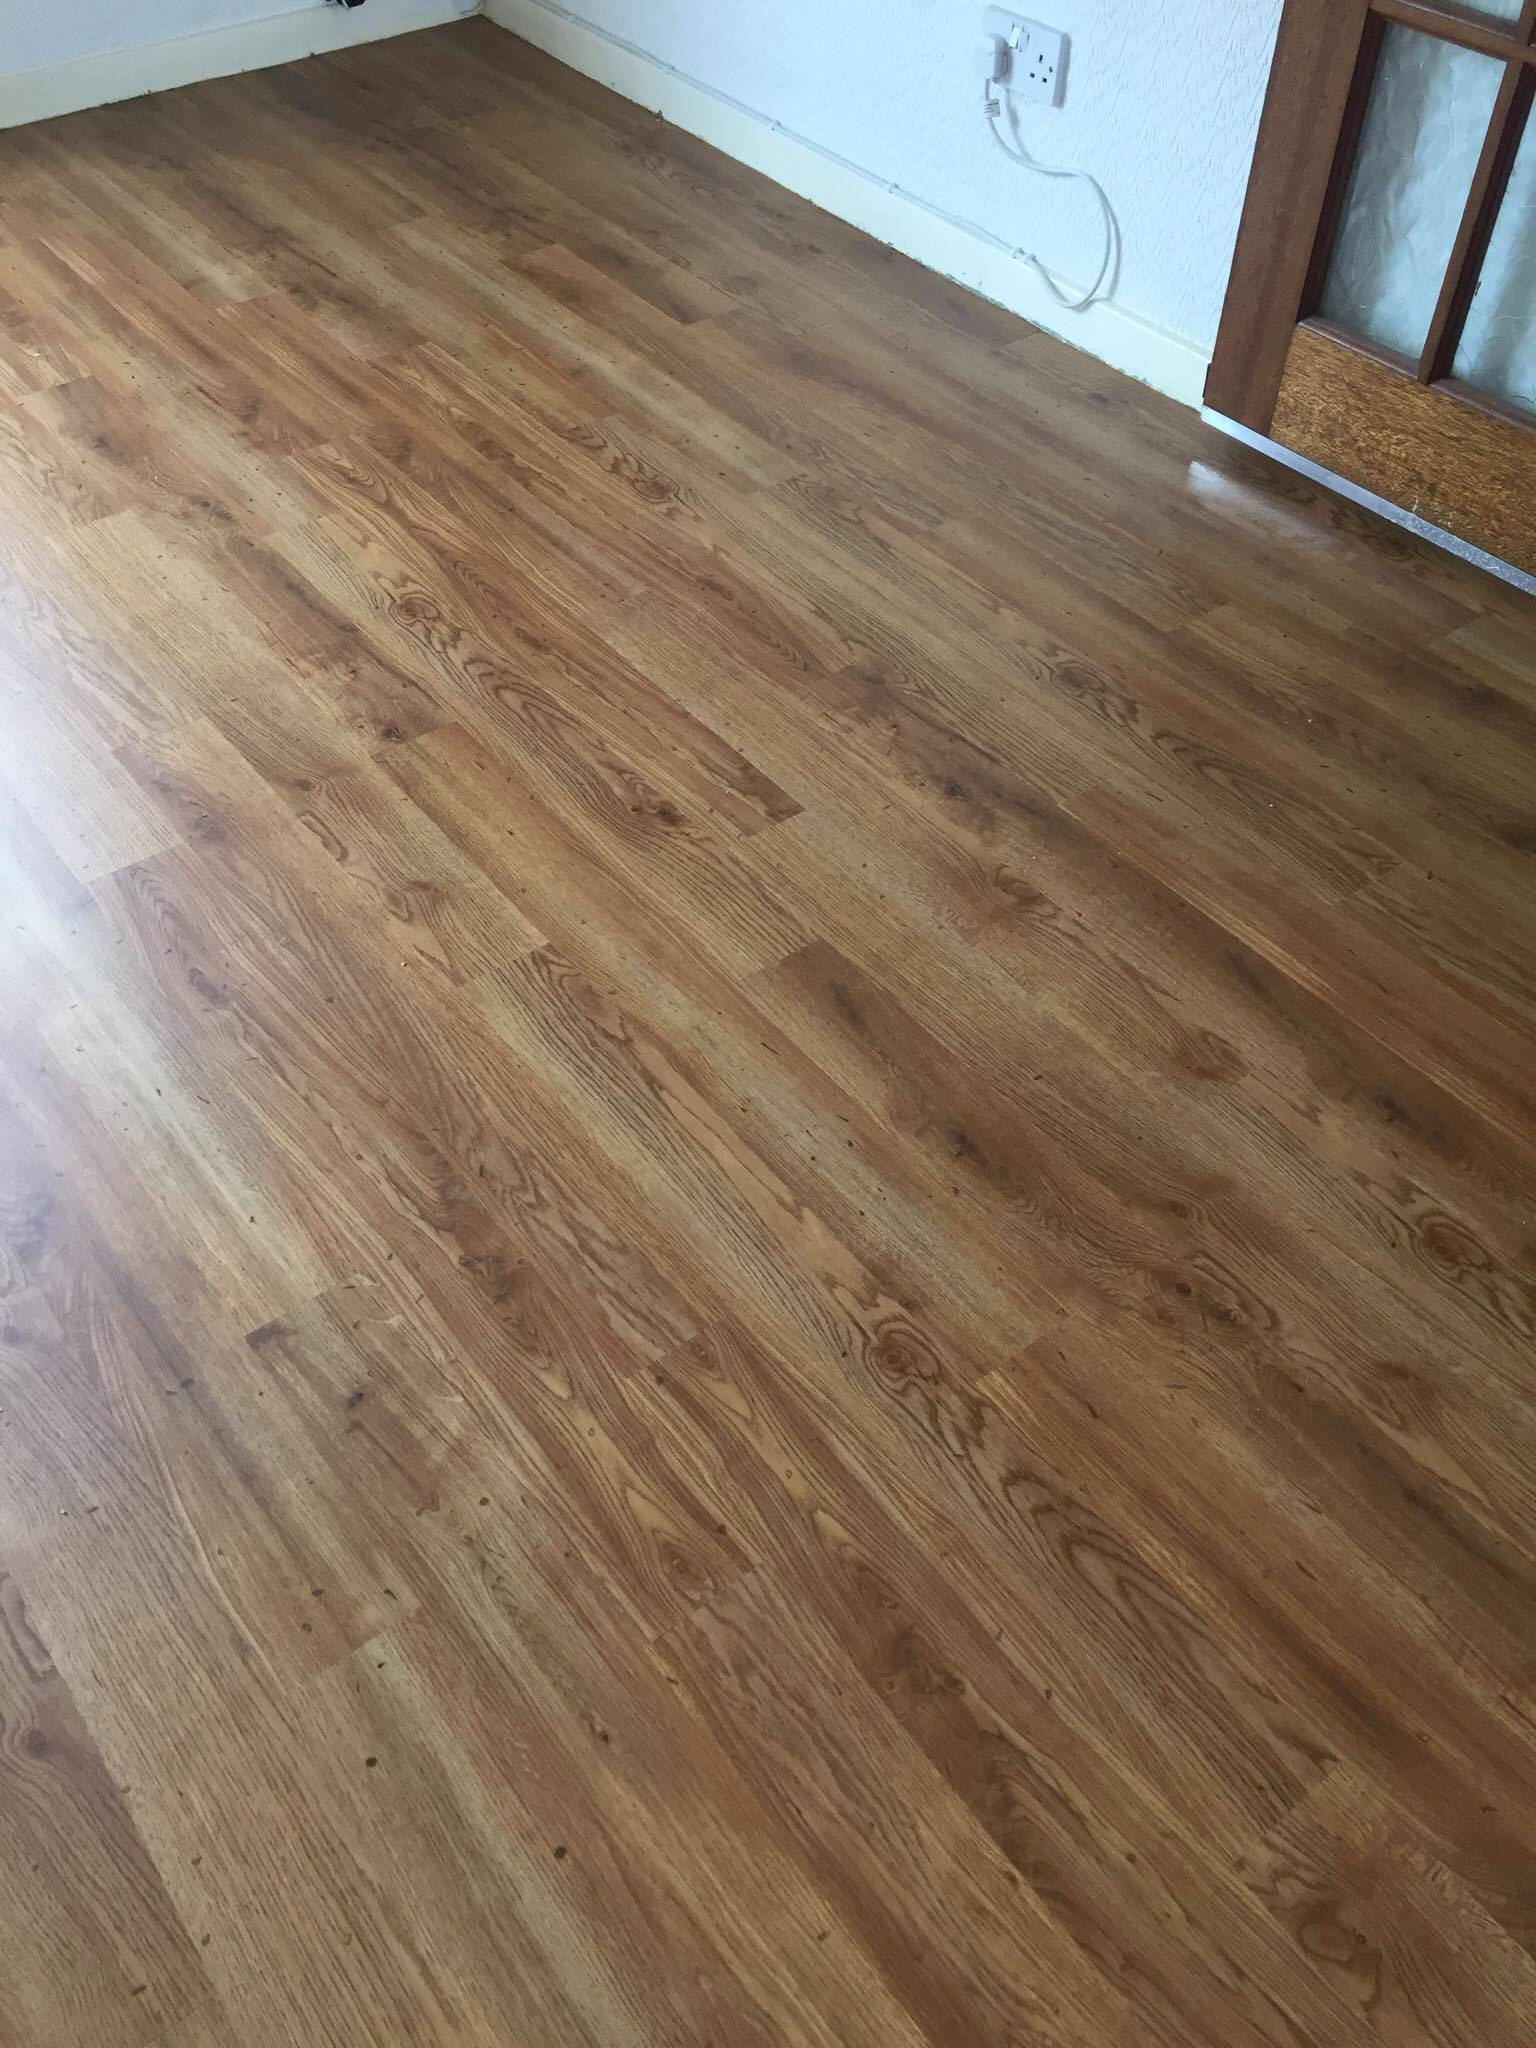 lvt flooring in a lounge